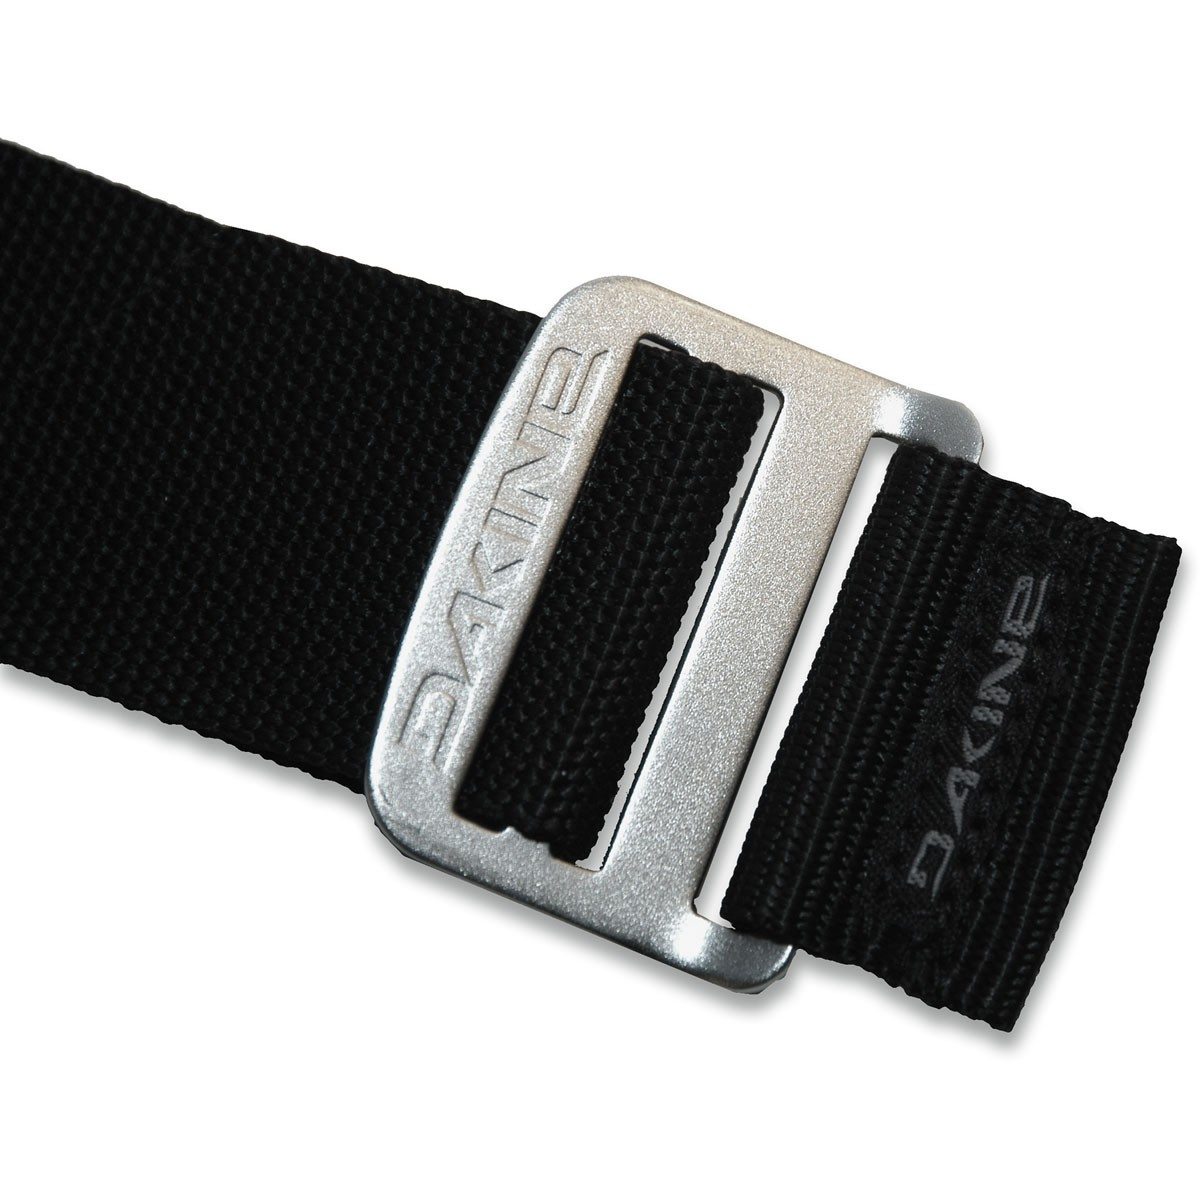 DAKINE HARNESS BELT  ;WITH POSILOCK ; ;